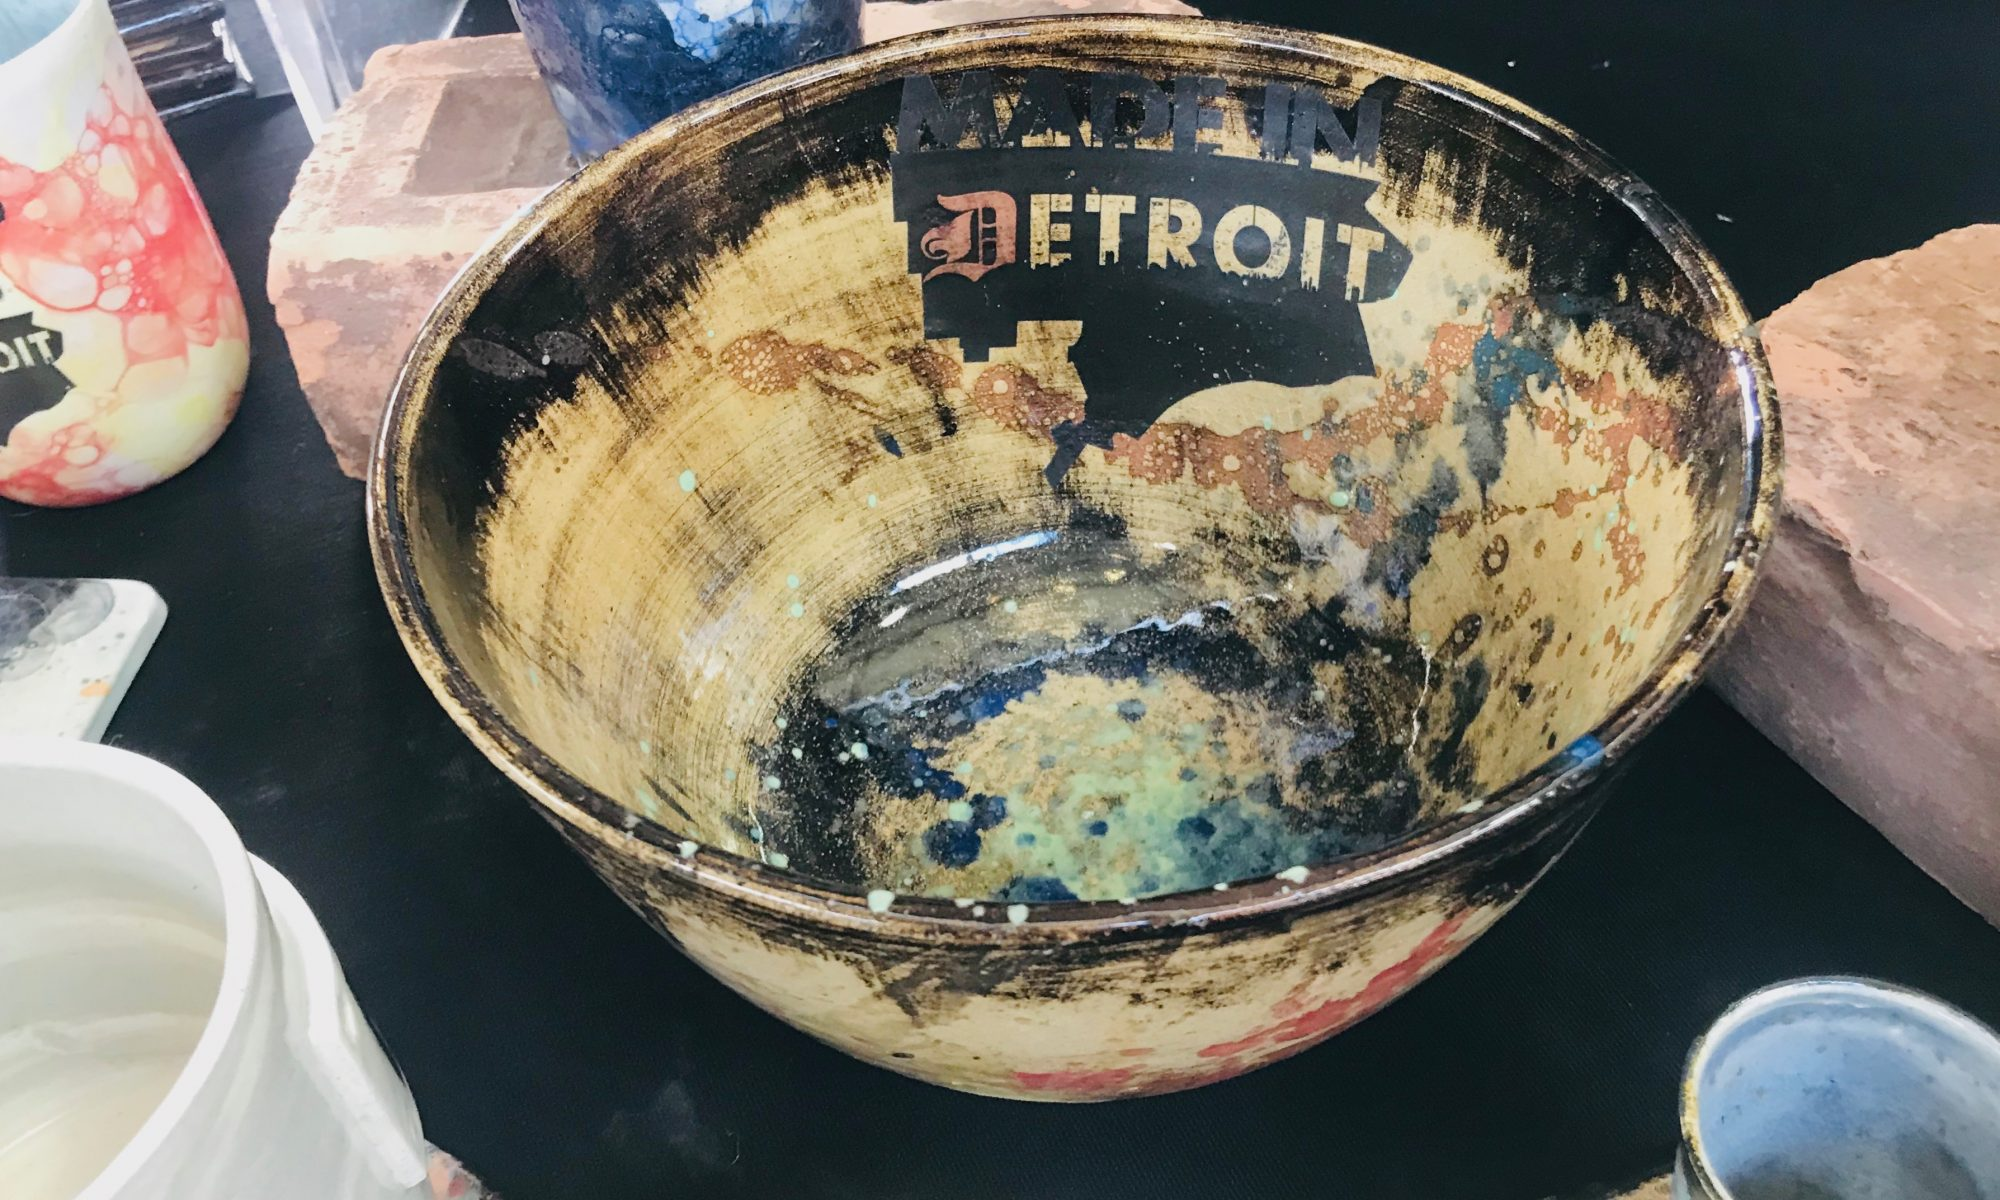 DETROIT ARTS and CULTURE